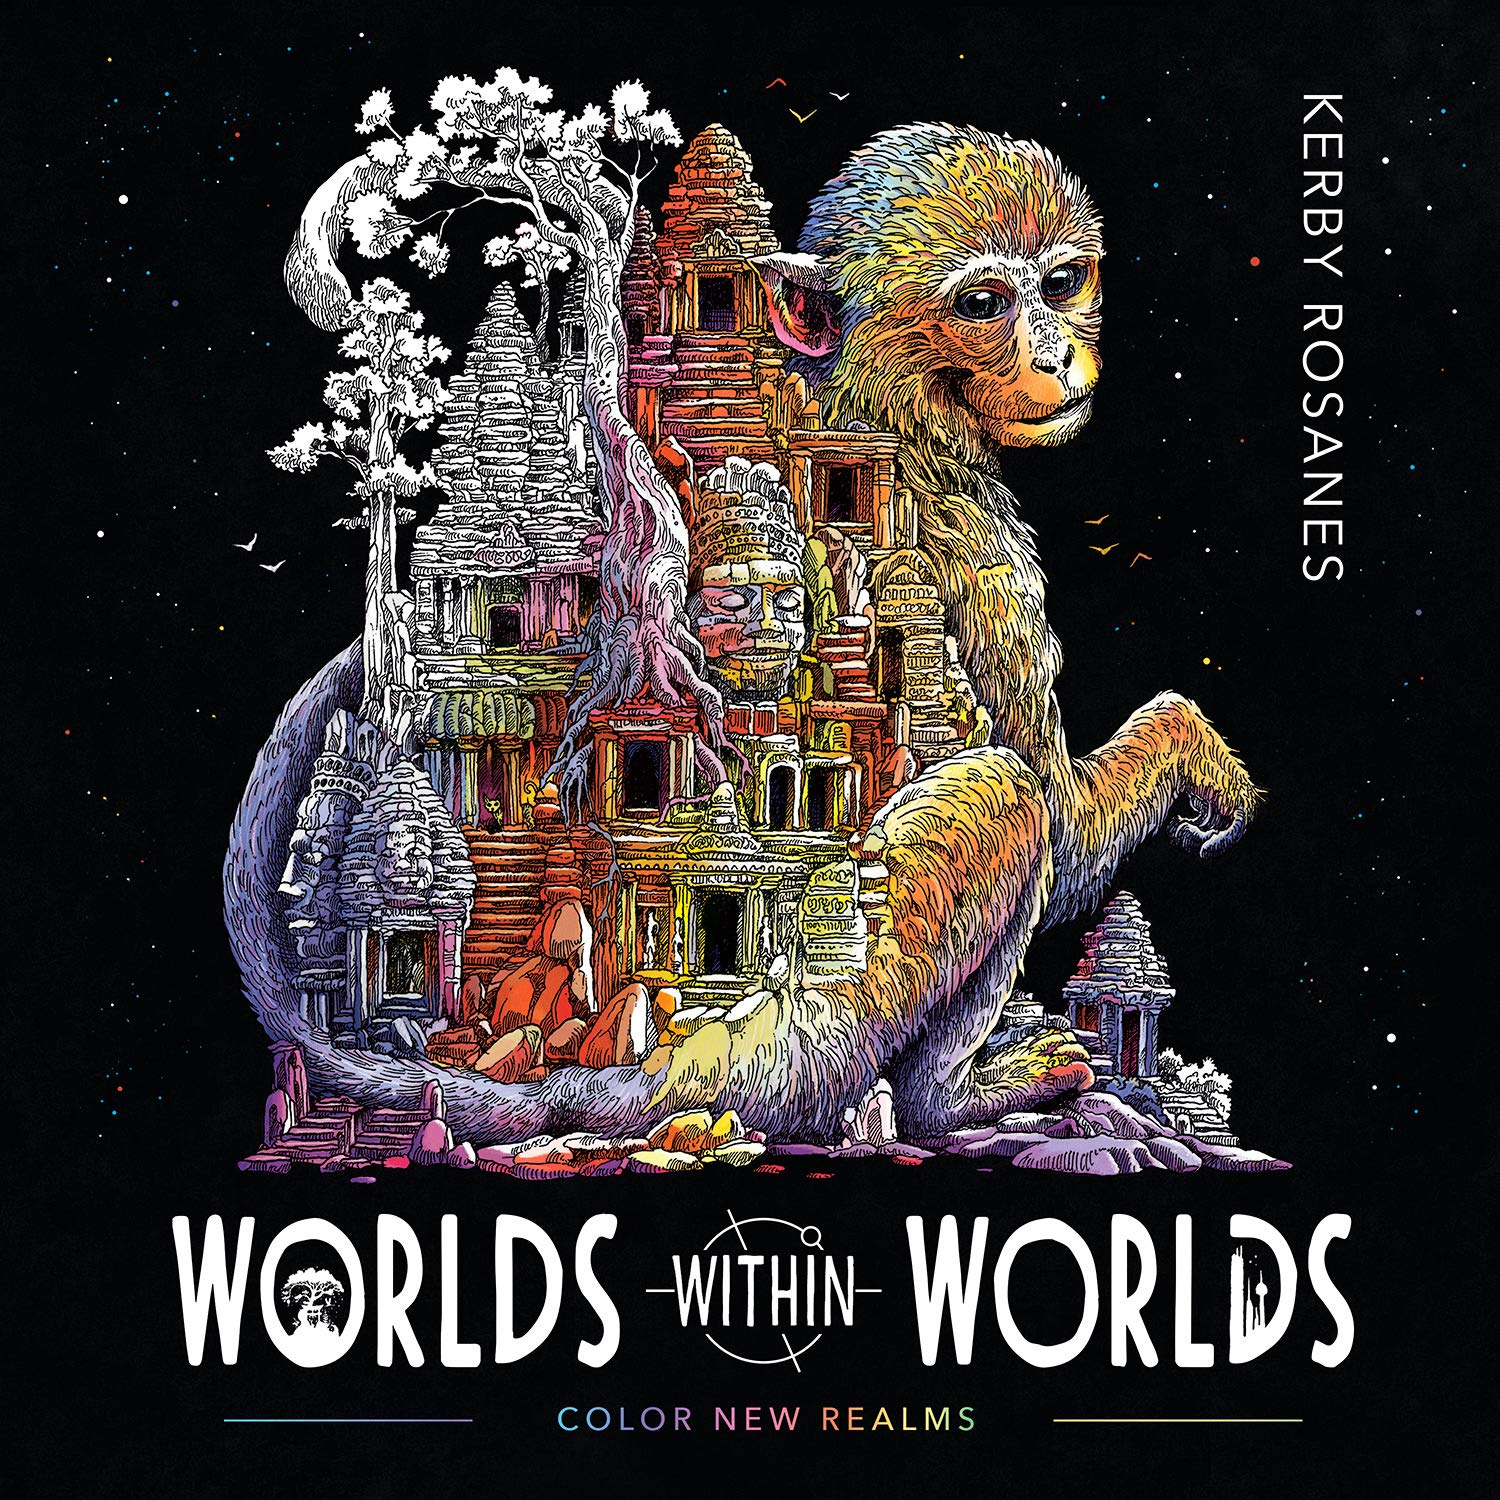 Amazon Com Worlds Within Worlds 9780593086230 Rosanes Kerby Books